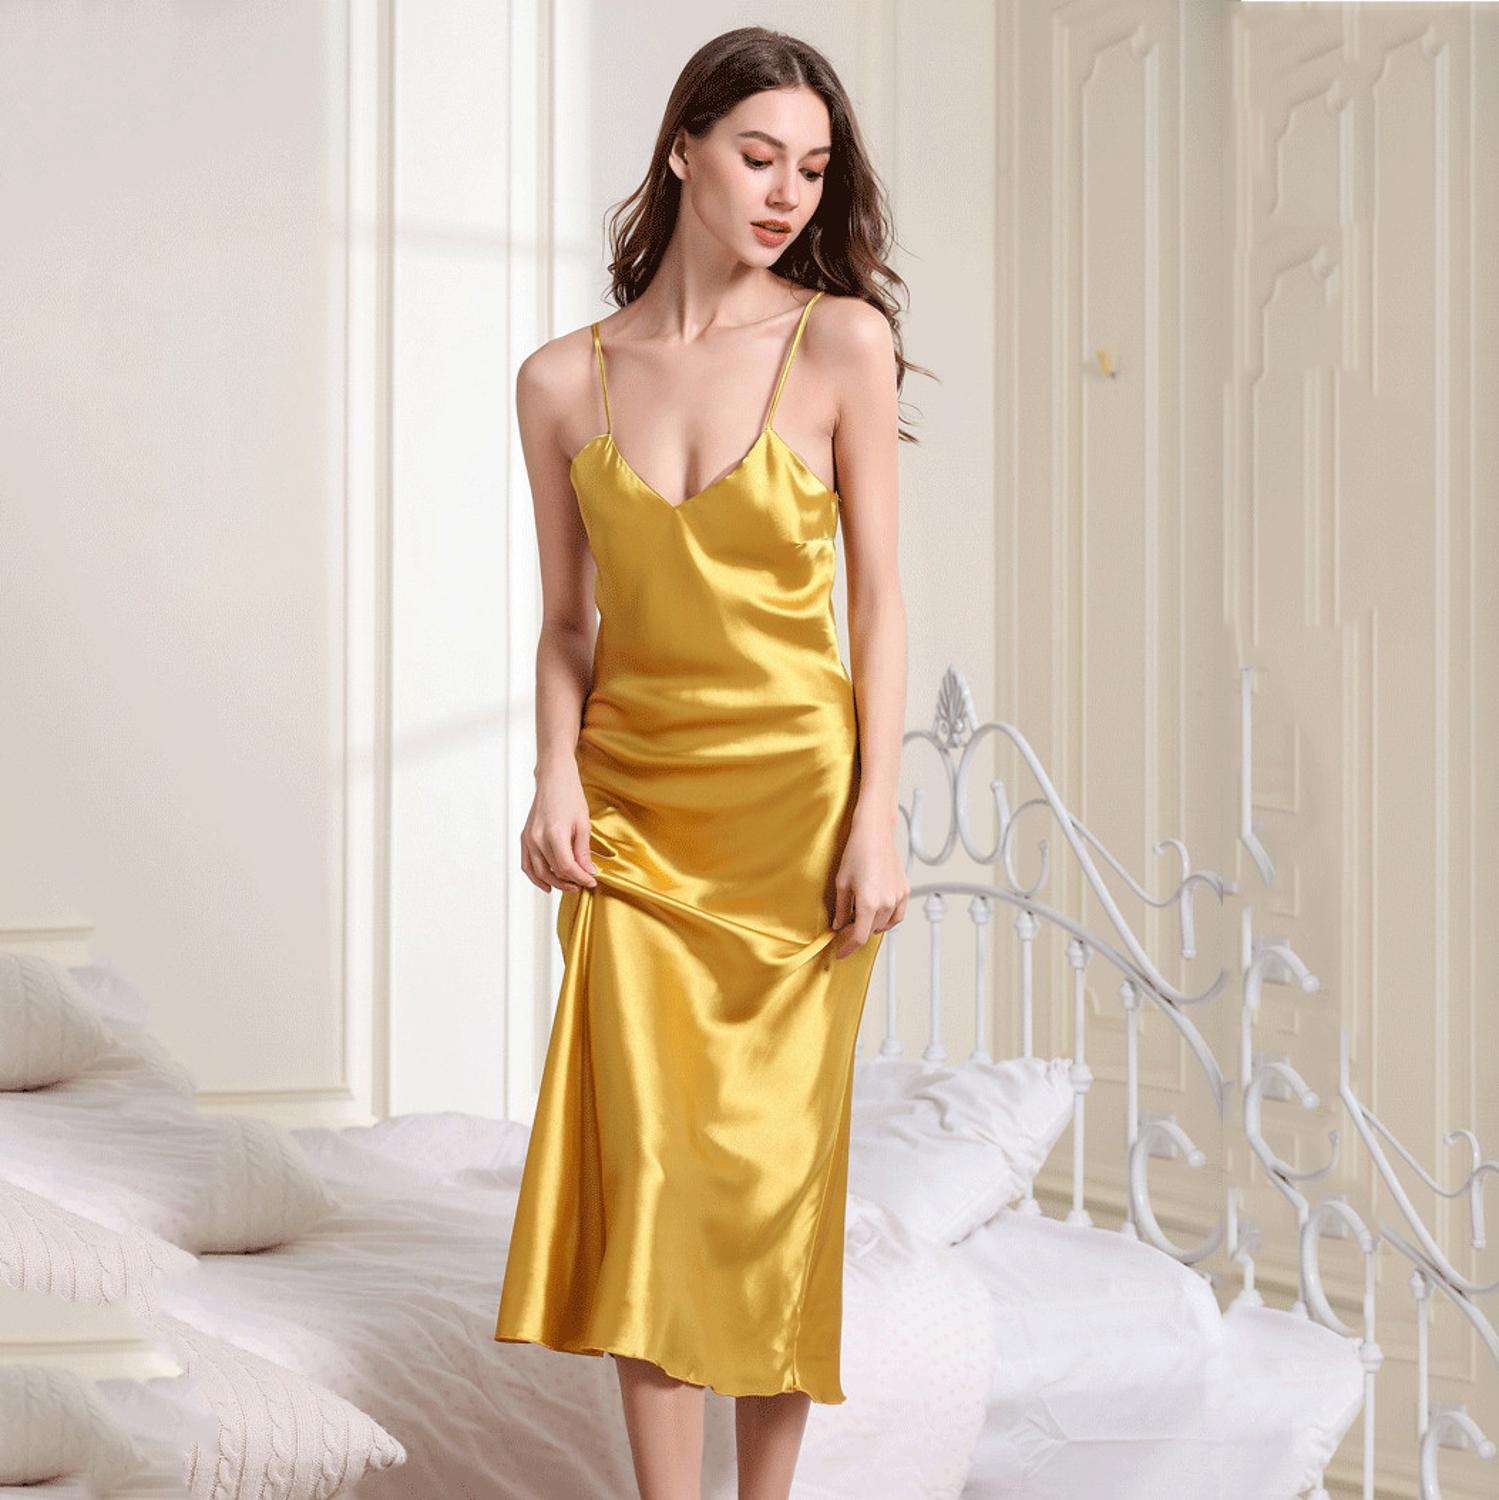 Sexy Long Sleep Dress Satin Rayon Sleepwear Solid Nightie Nightgown Women Nightdress Intemate Lingerie Women Nightwear Bath Gown